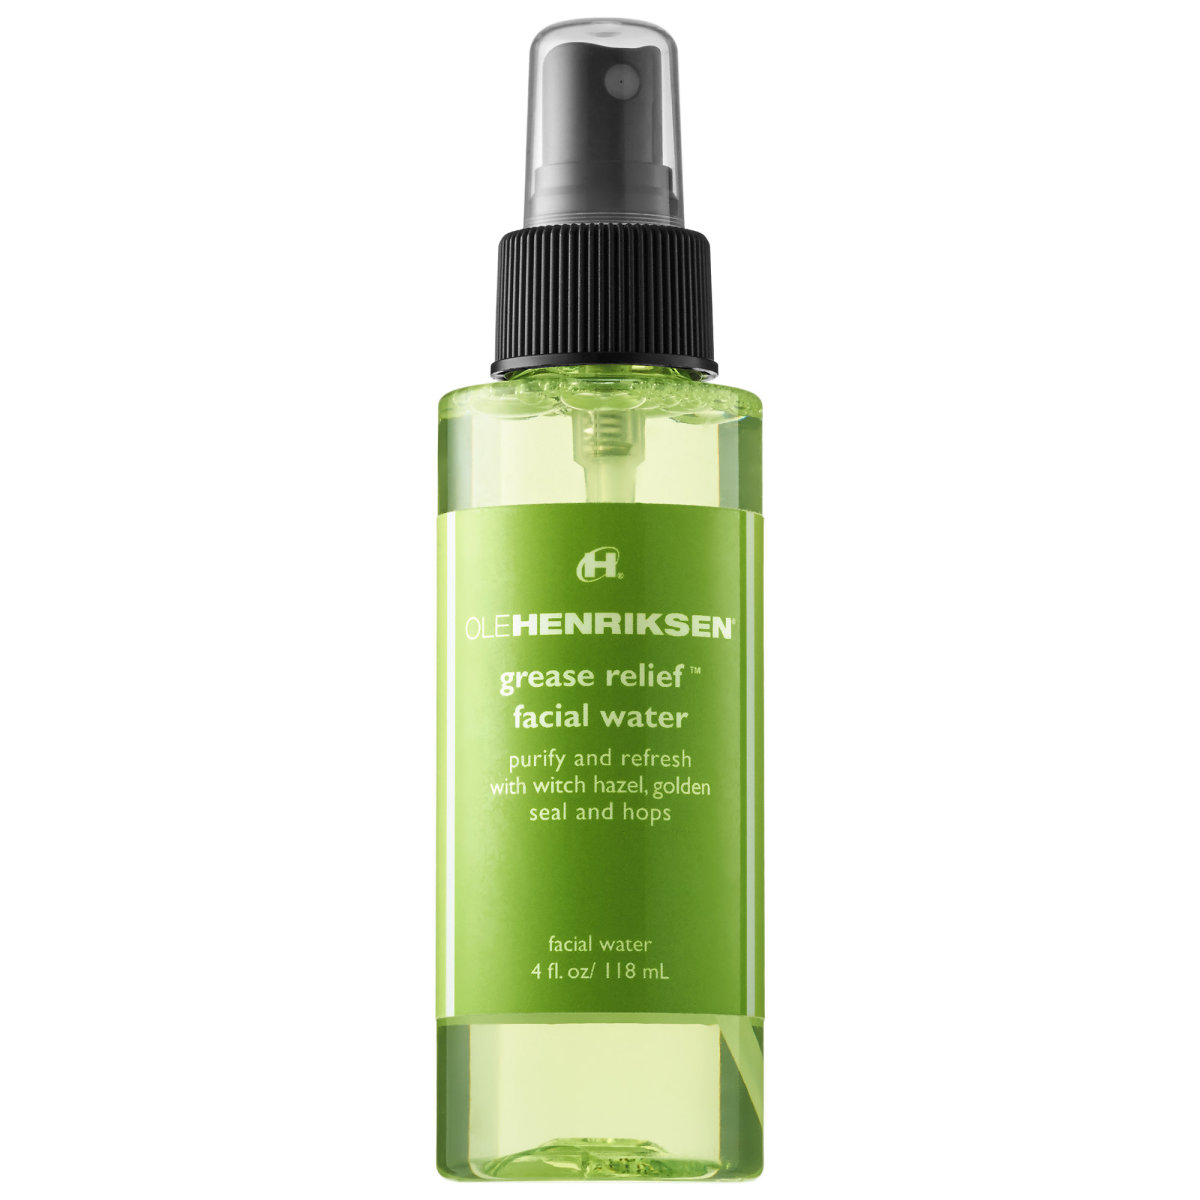 Ole Henriksen Grease Relief Facial Water